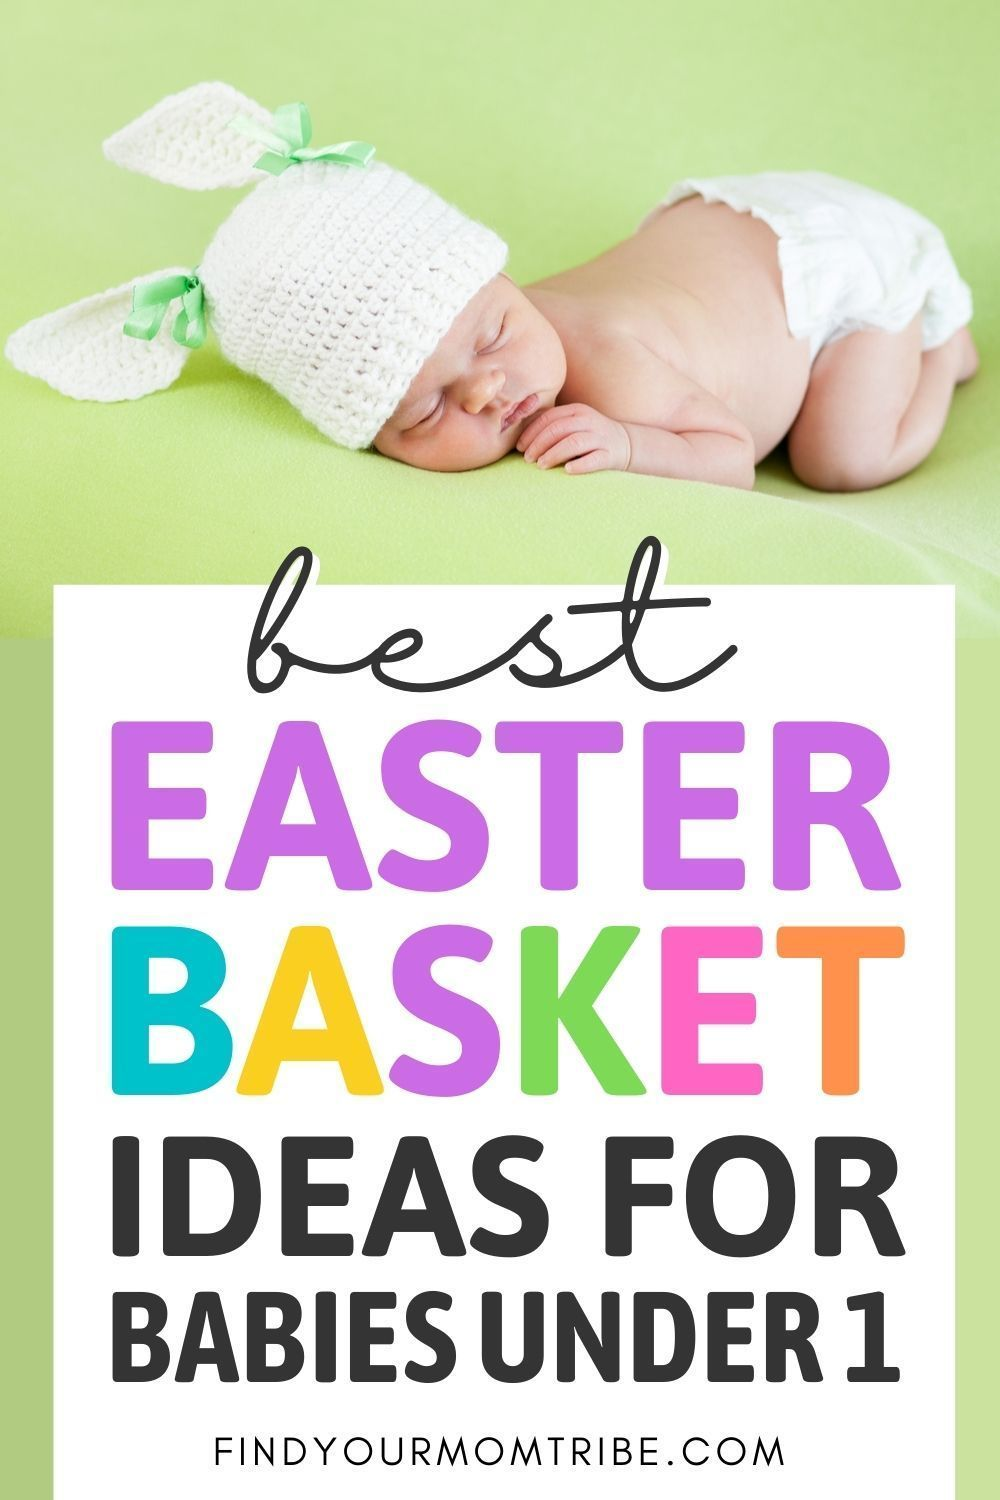 20 Best Easter Basket Ideas In 2021 For Babies Under 1 In 2021 Easter Baskets Mom Birthday Gift Valentines Gift Guide